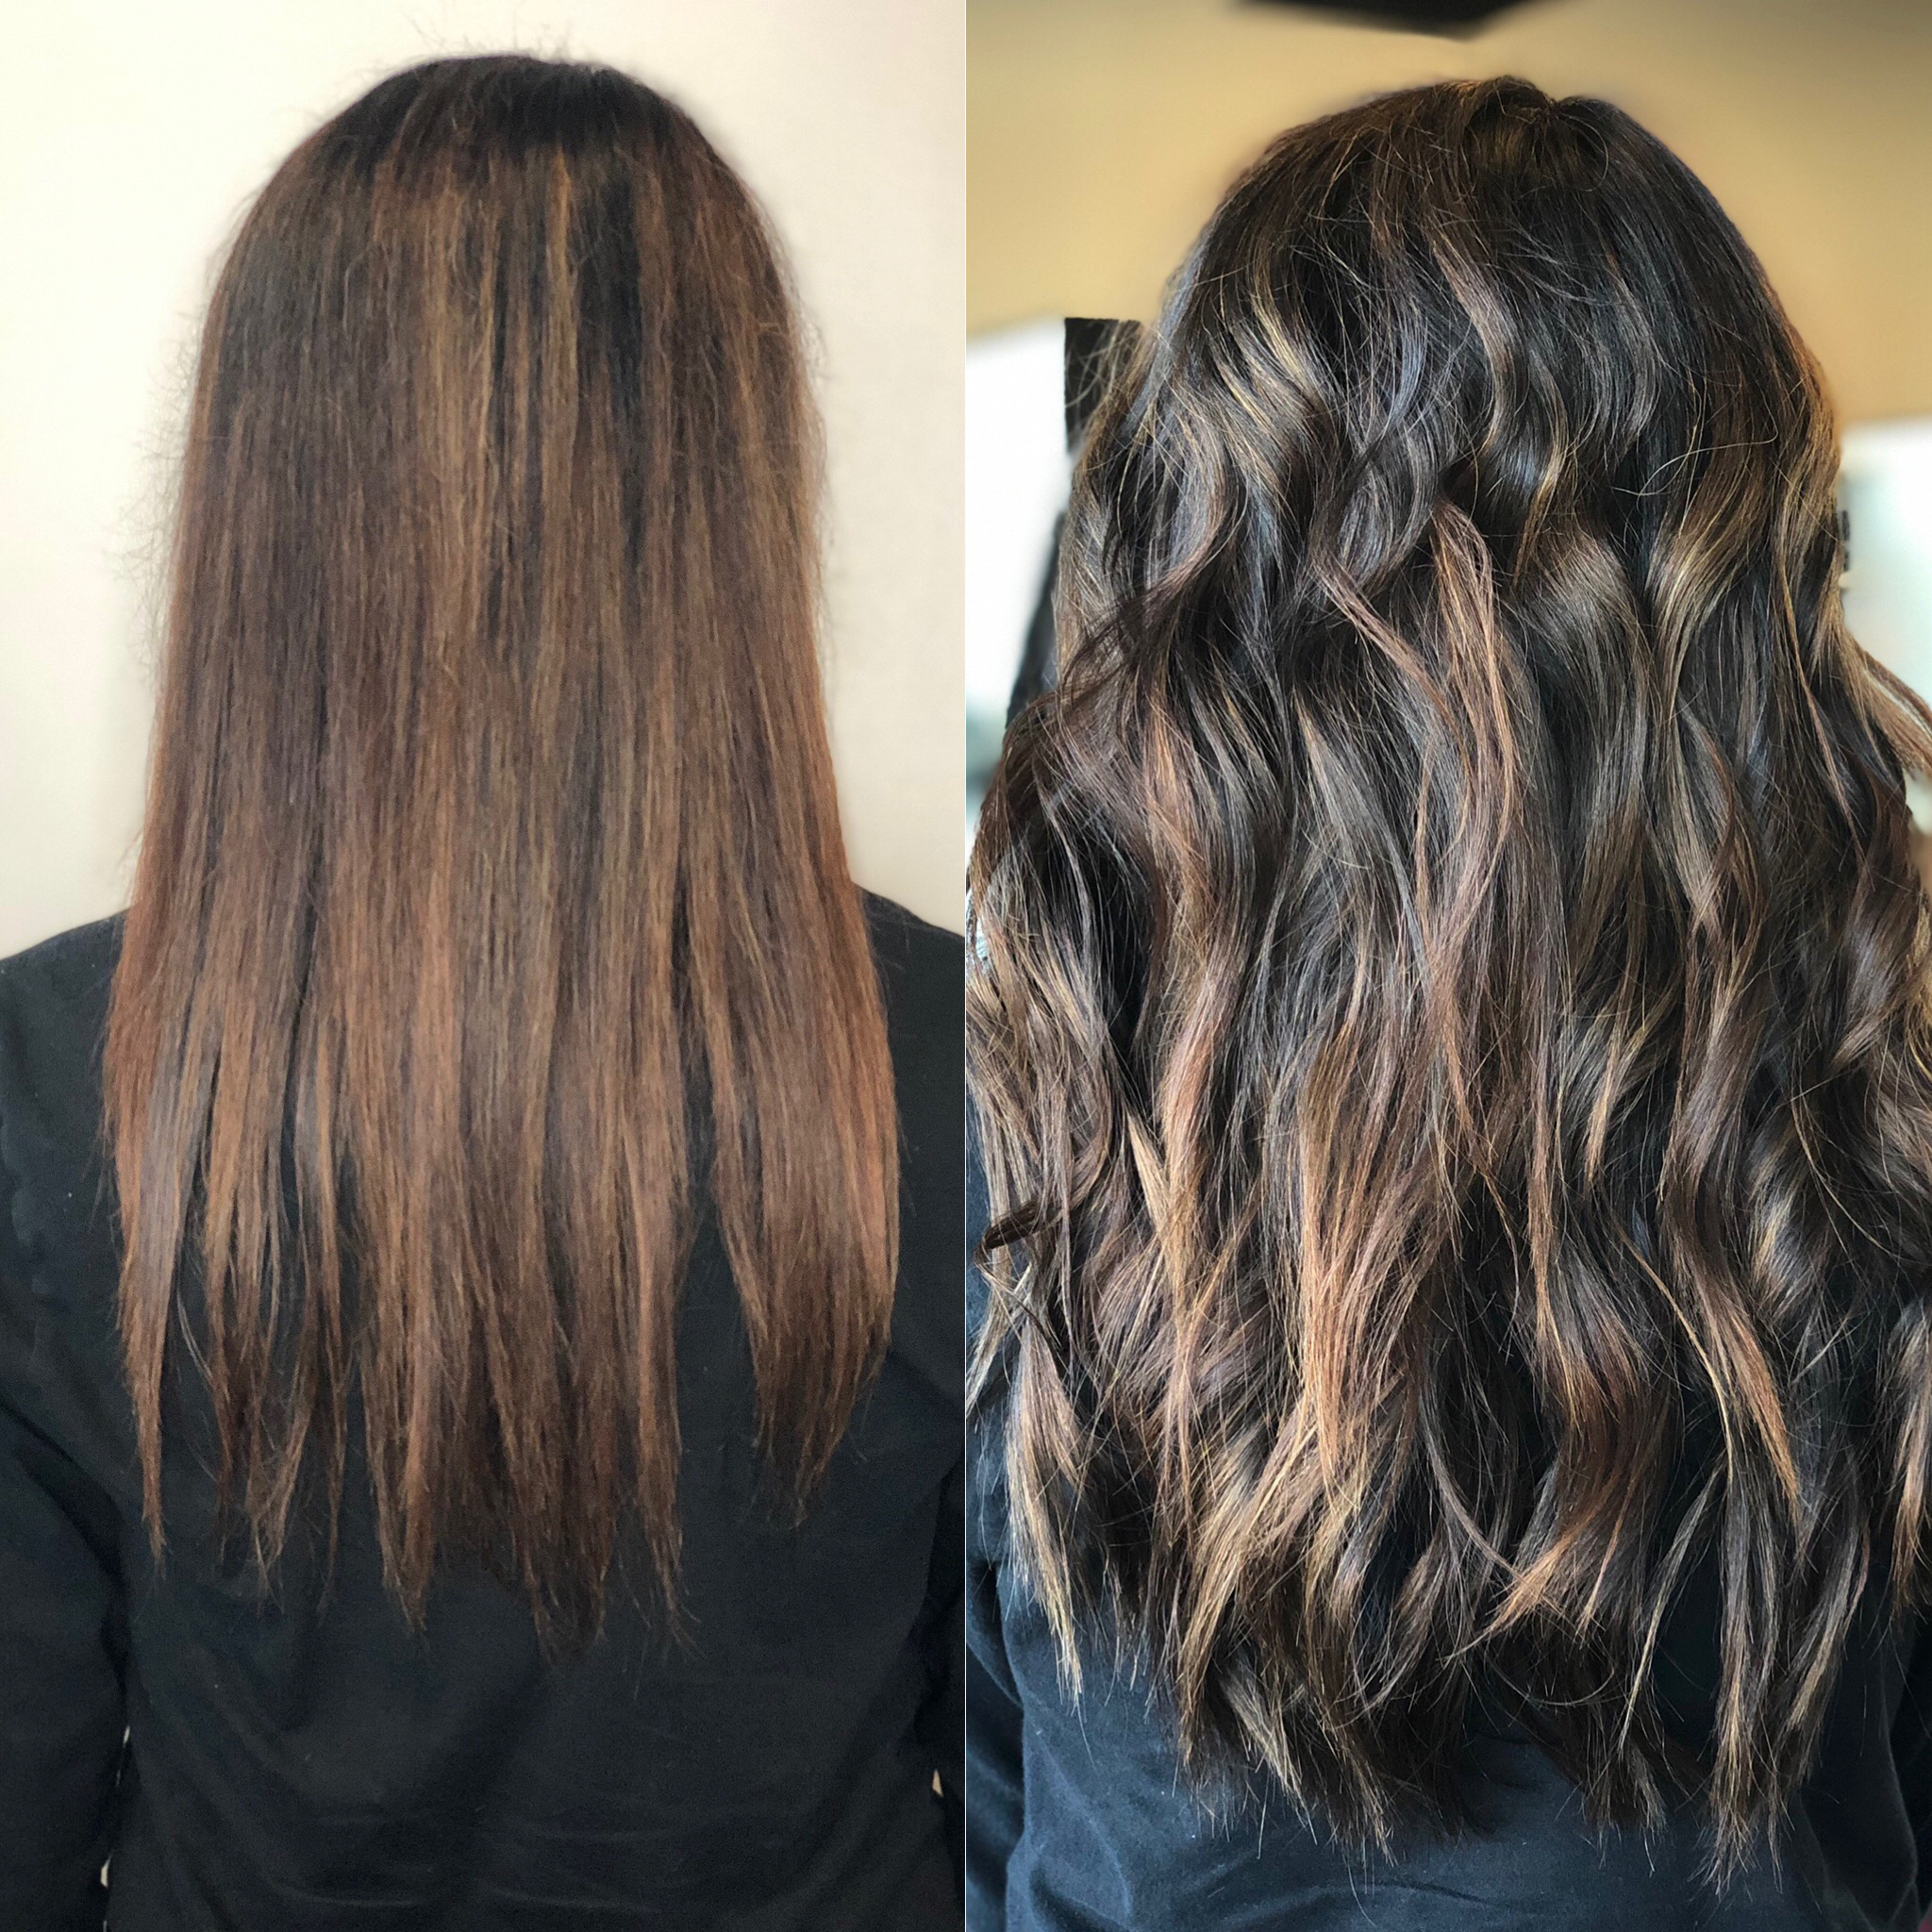 Natural Beaded Rows Kansas City Stylist Transformation 4